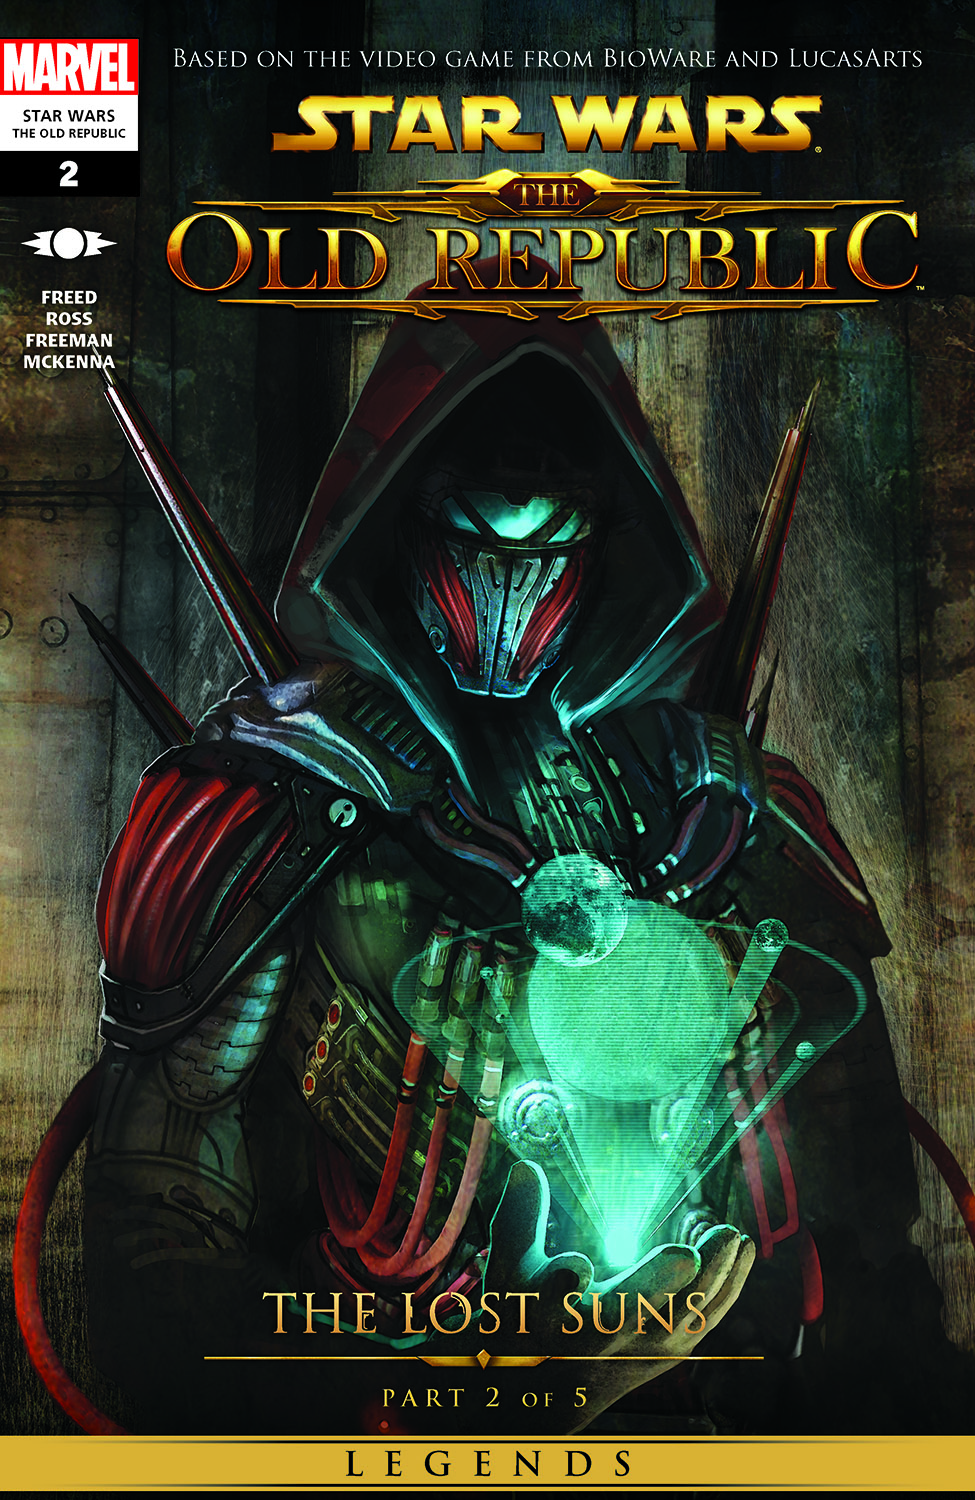 Star Wars: The Old Republic - The Lost Suns (2011) #2